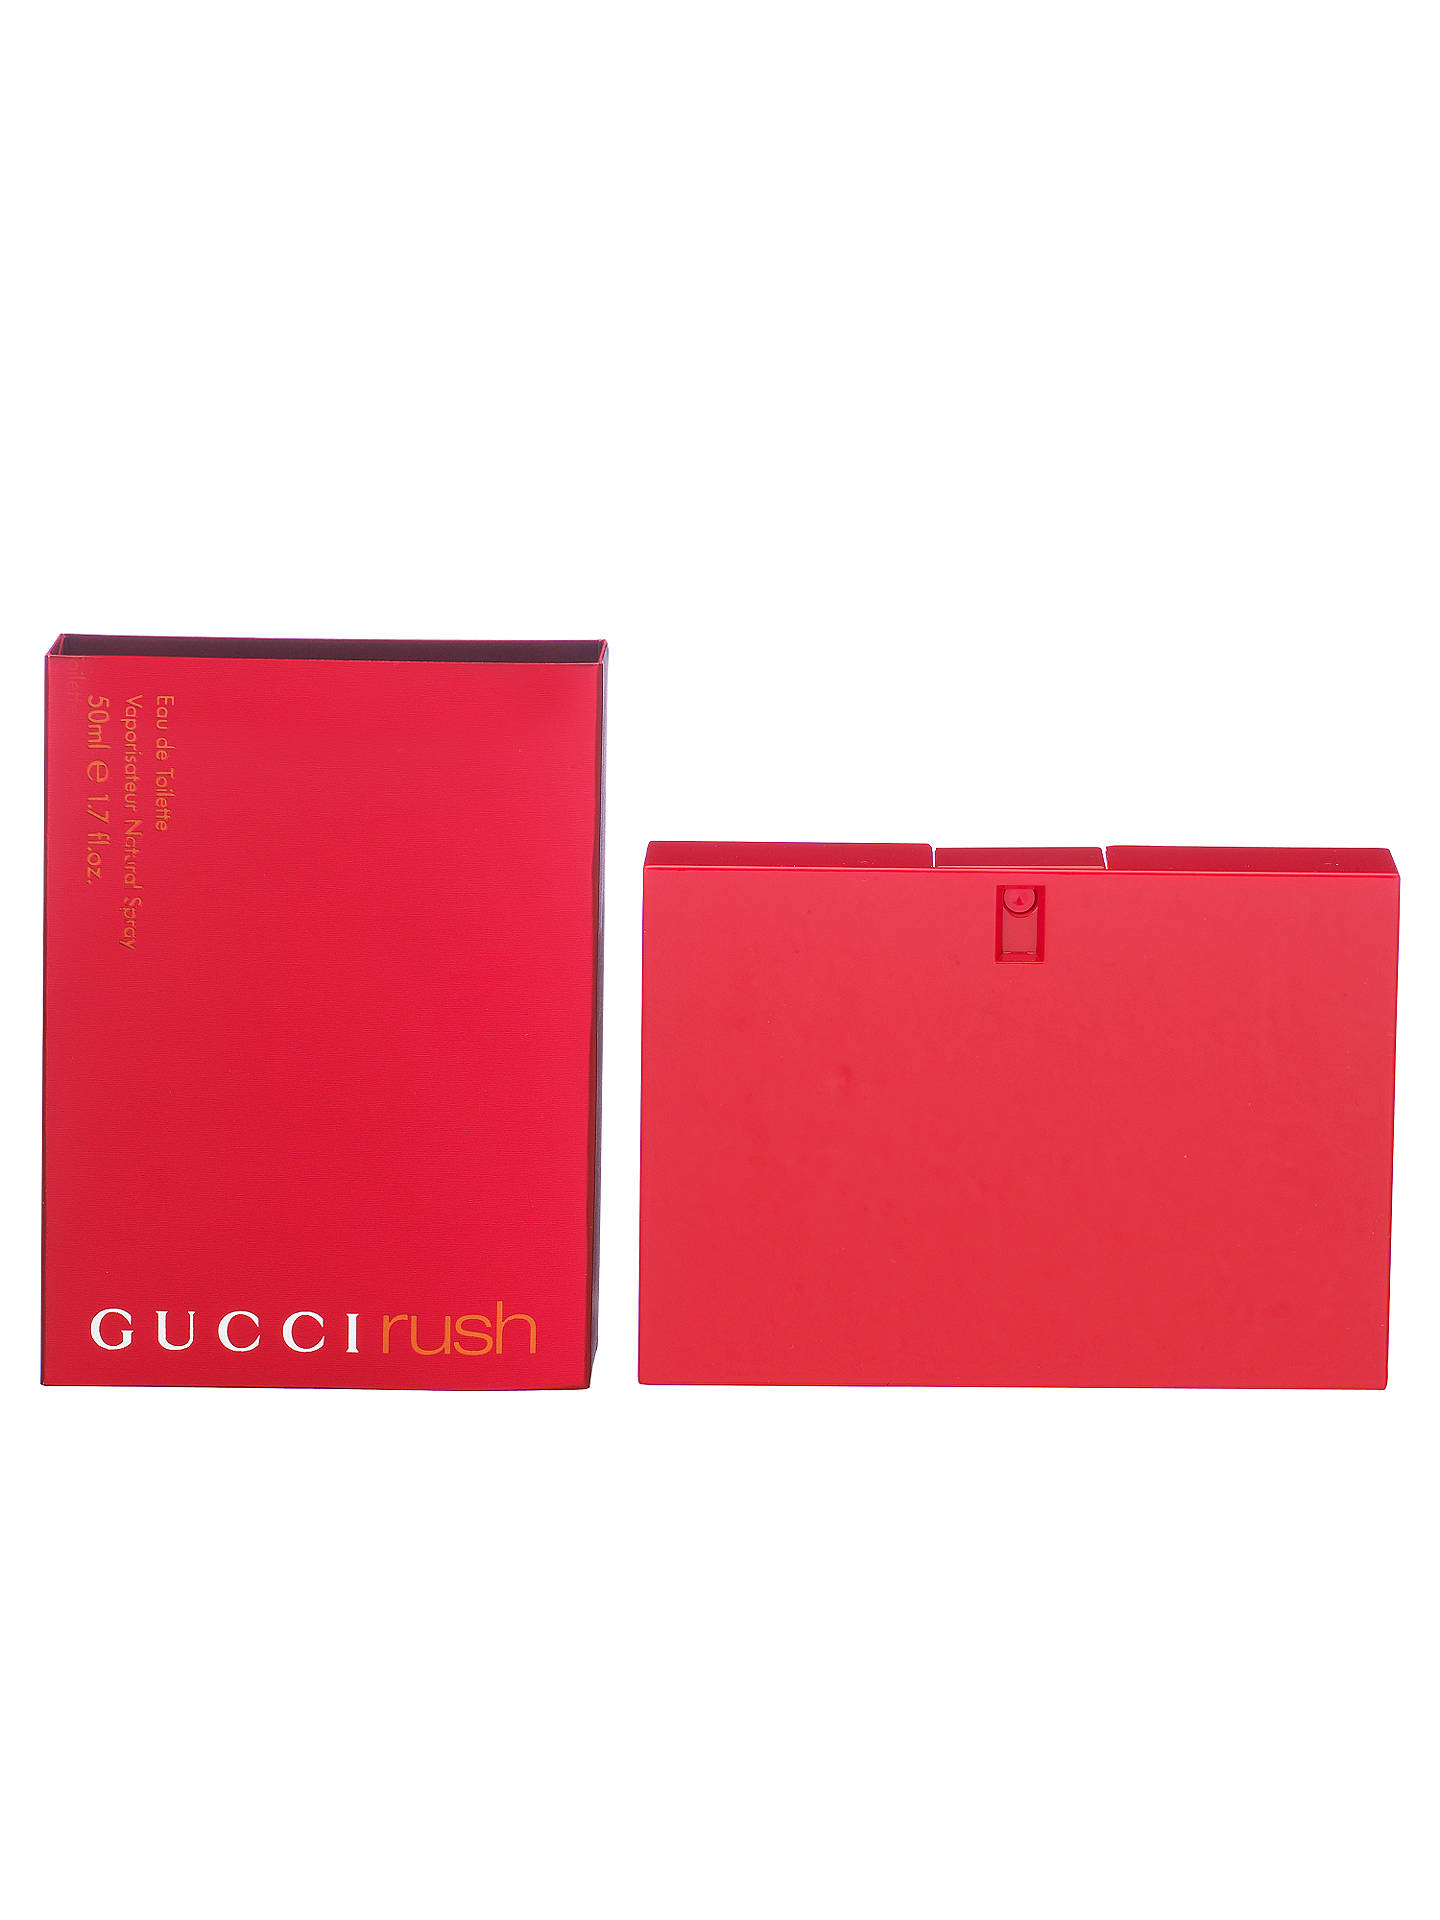 7e0648f5b7634 Buy Gucci Rush Eau de Toilette Spray